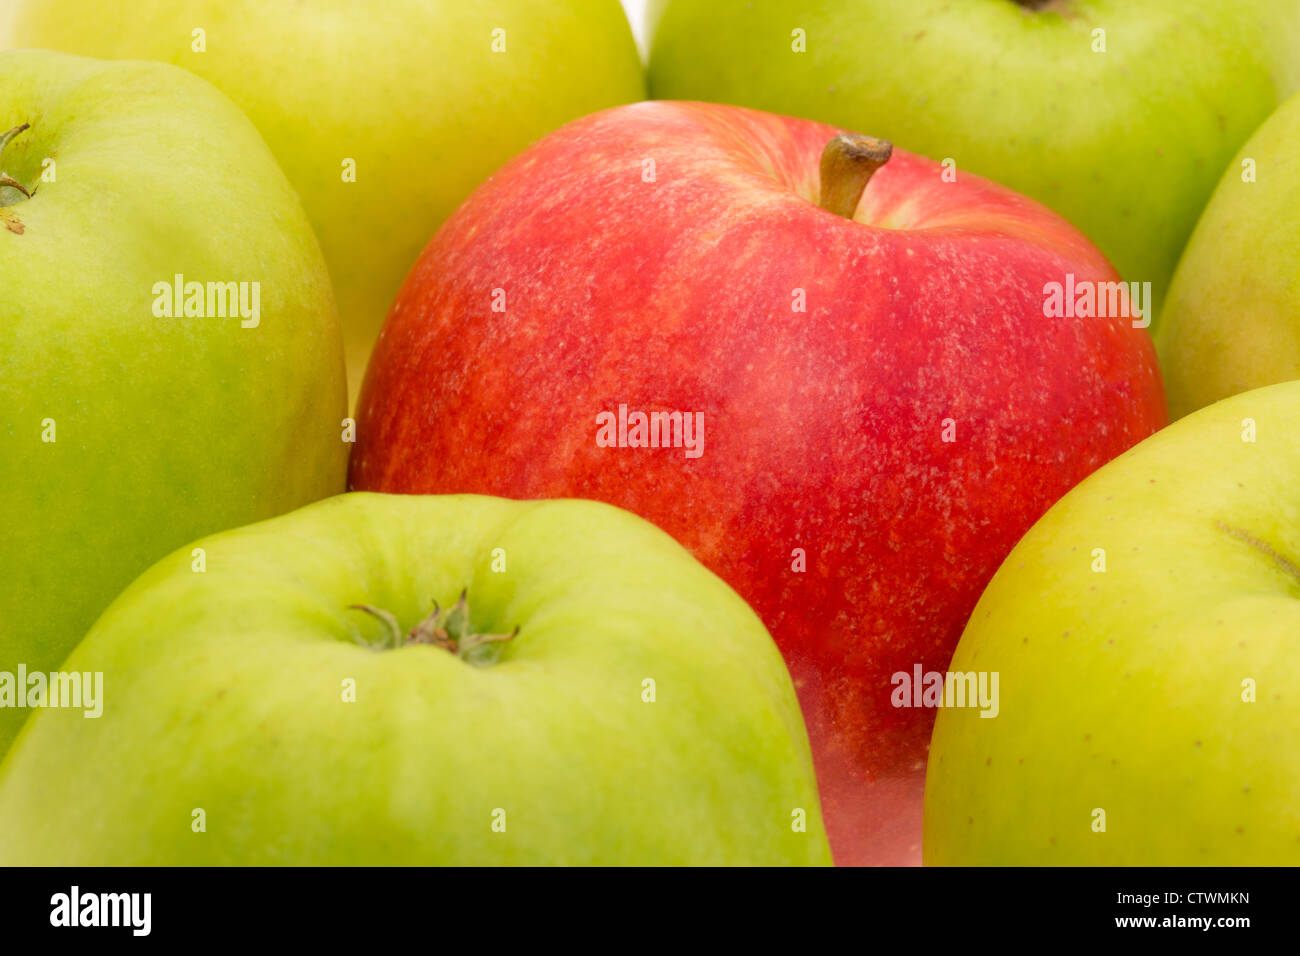 A single red apple standing out amongst a group of green apples - studio shot with a shallow depth of field - Stock Image